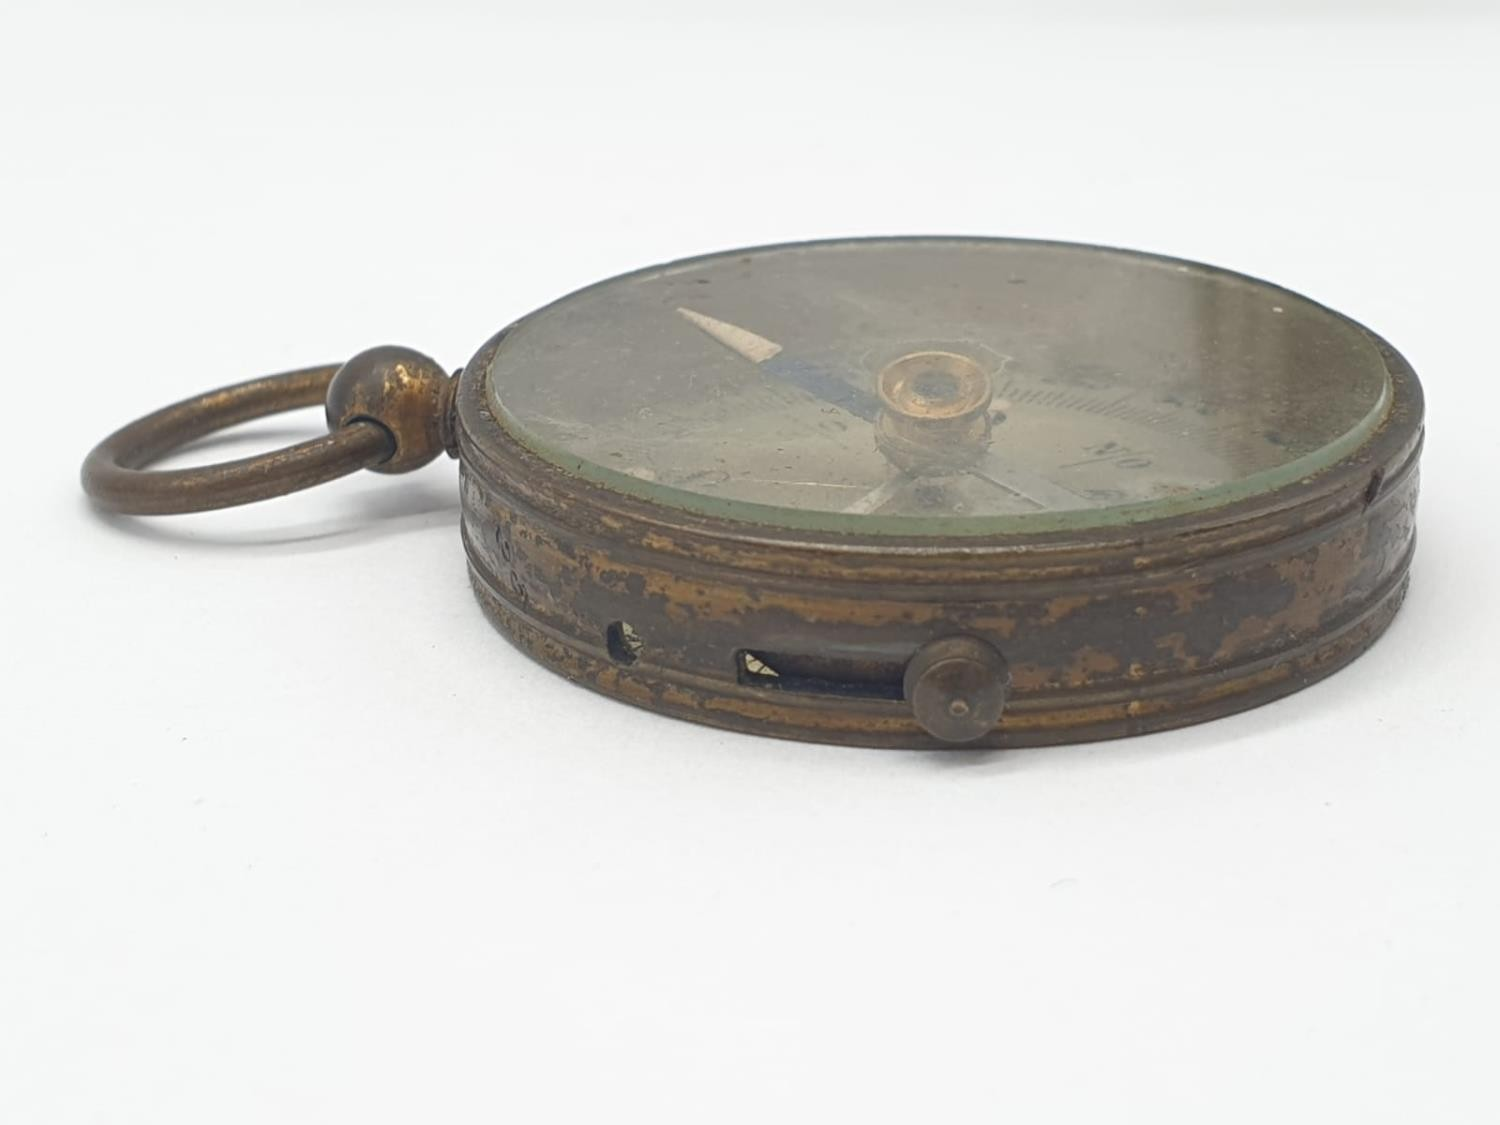 WW1 Imperial German Officers Compass. - Image 3 of 3